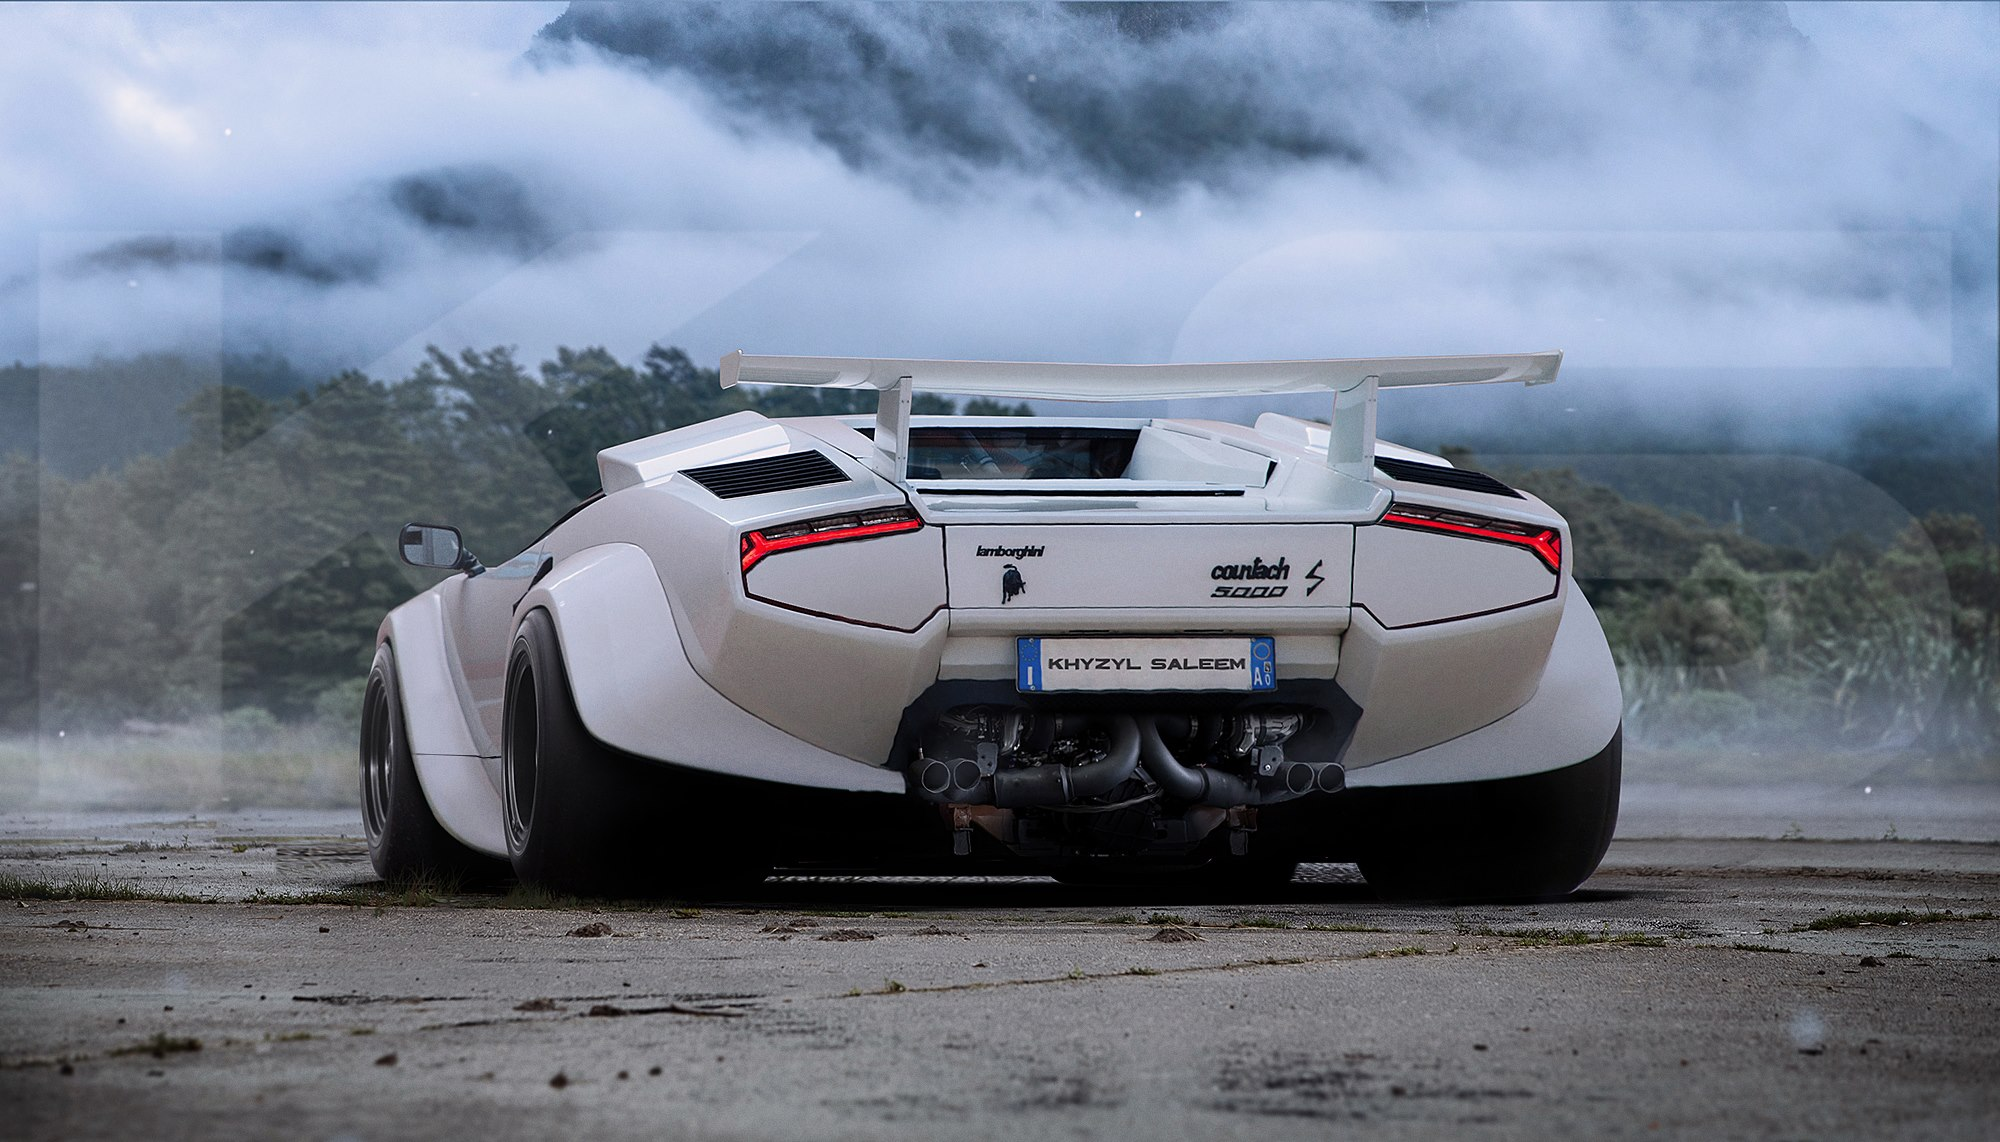 Lamborghini Countach with Hurricane Taillights